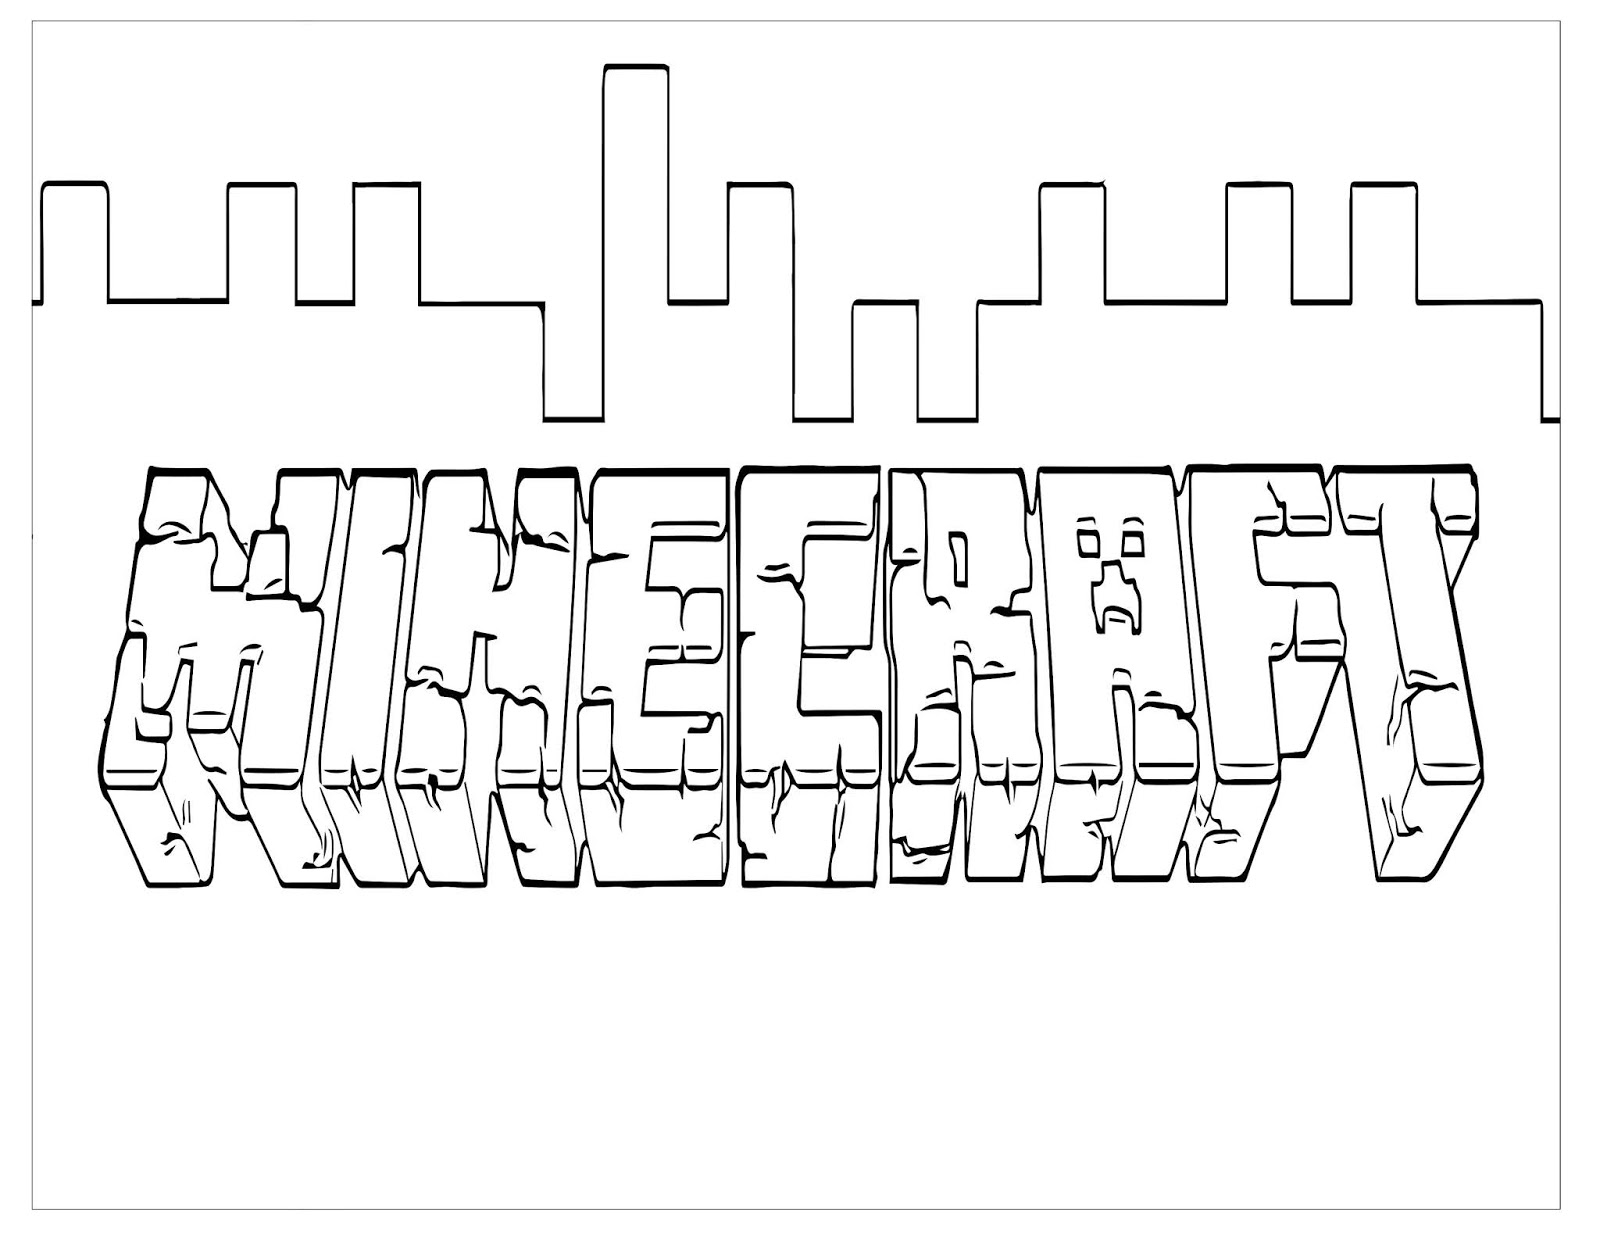 minecraft logo coloring pages minecraft logo coloring sheet coloring pages templates 2 minecraft pages logo coloring